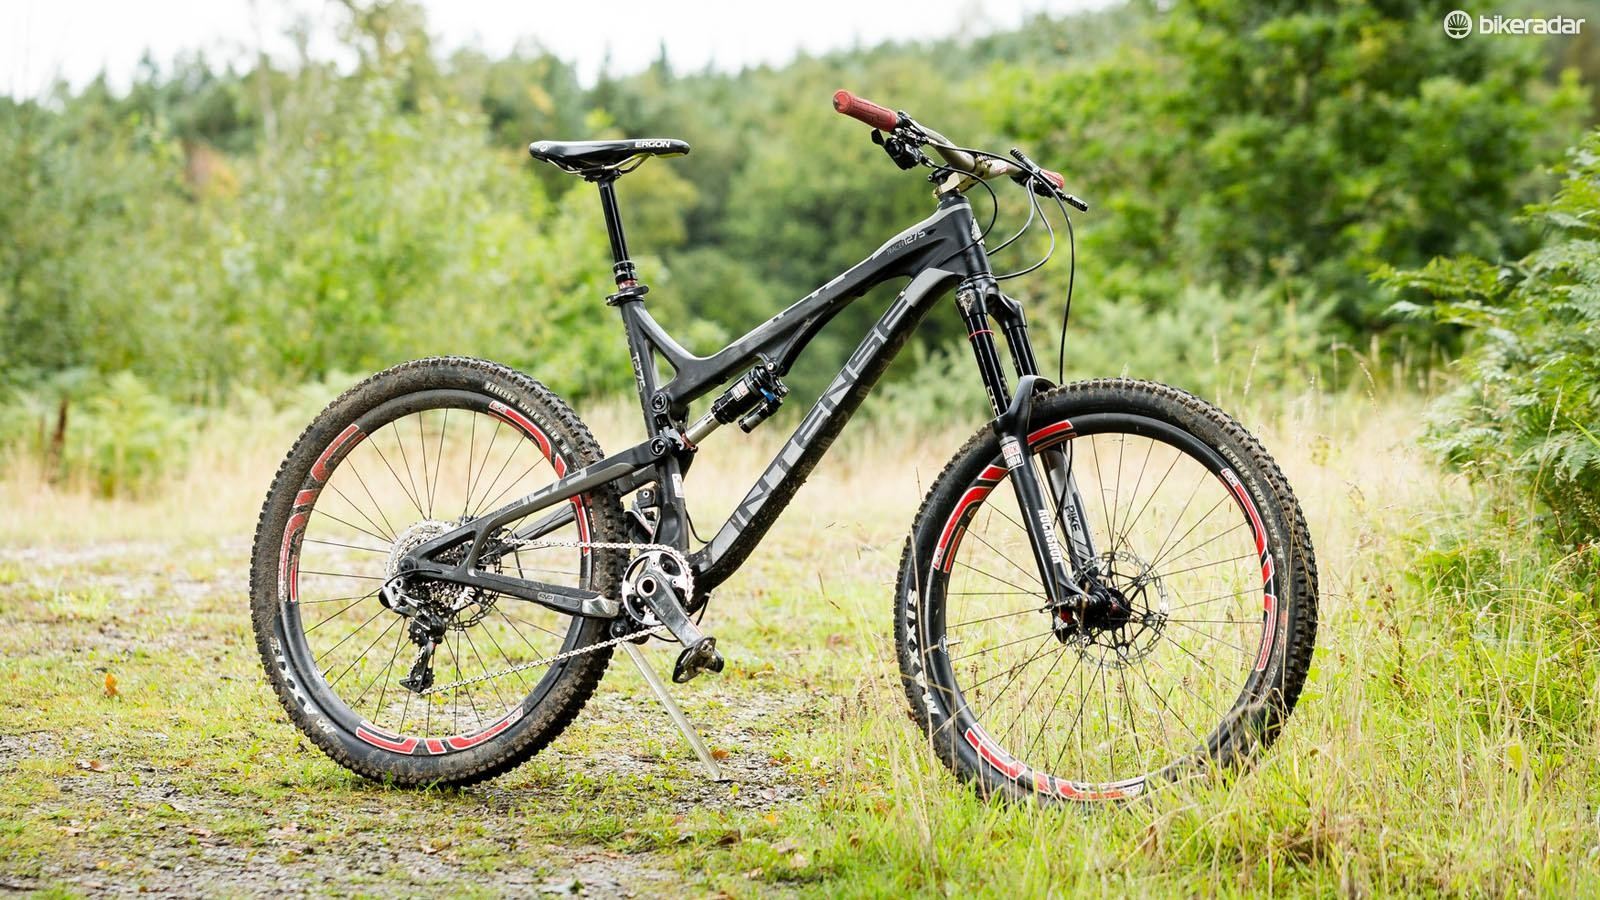 """Intense billed its Tracer 275C as the """"definitive carbon enduro bike"""" –it's still a strong contender but could use a refresh"""